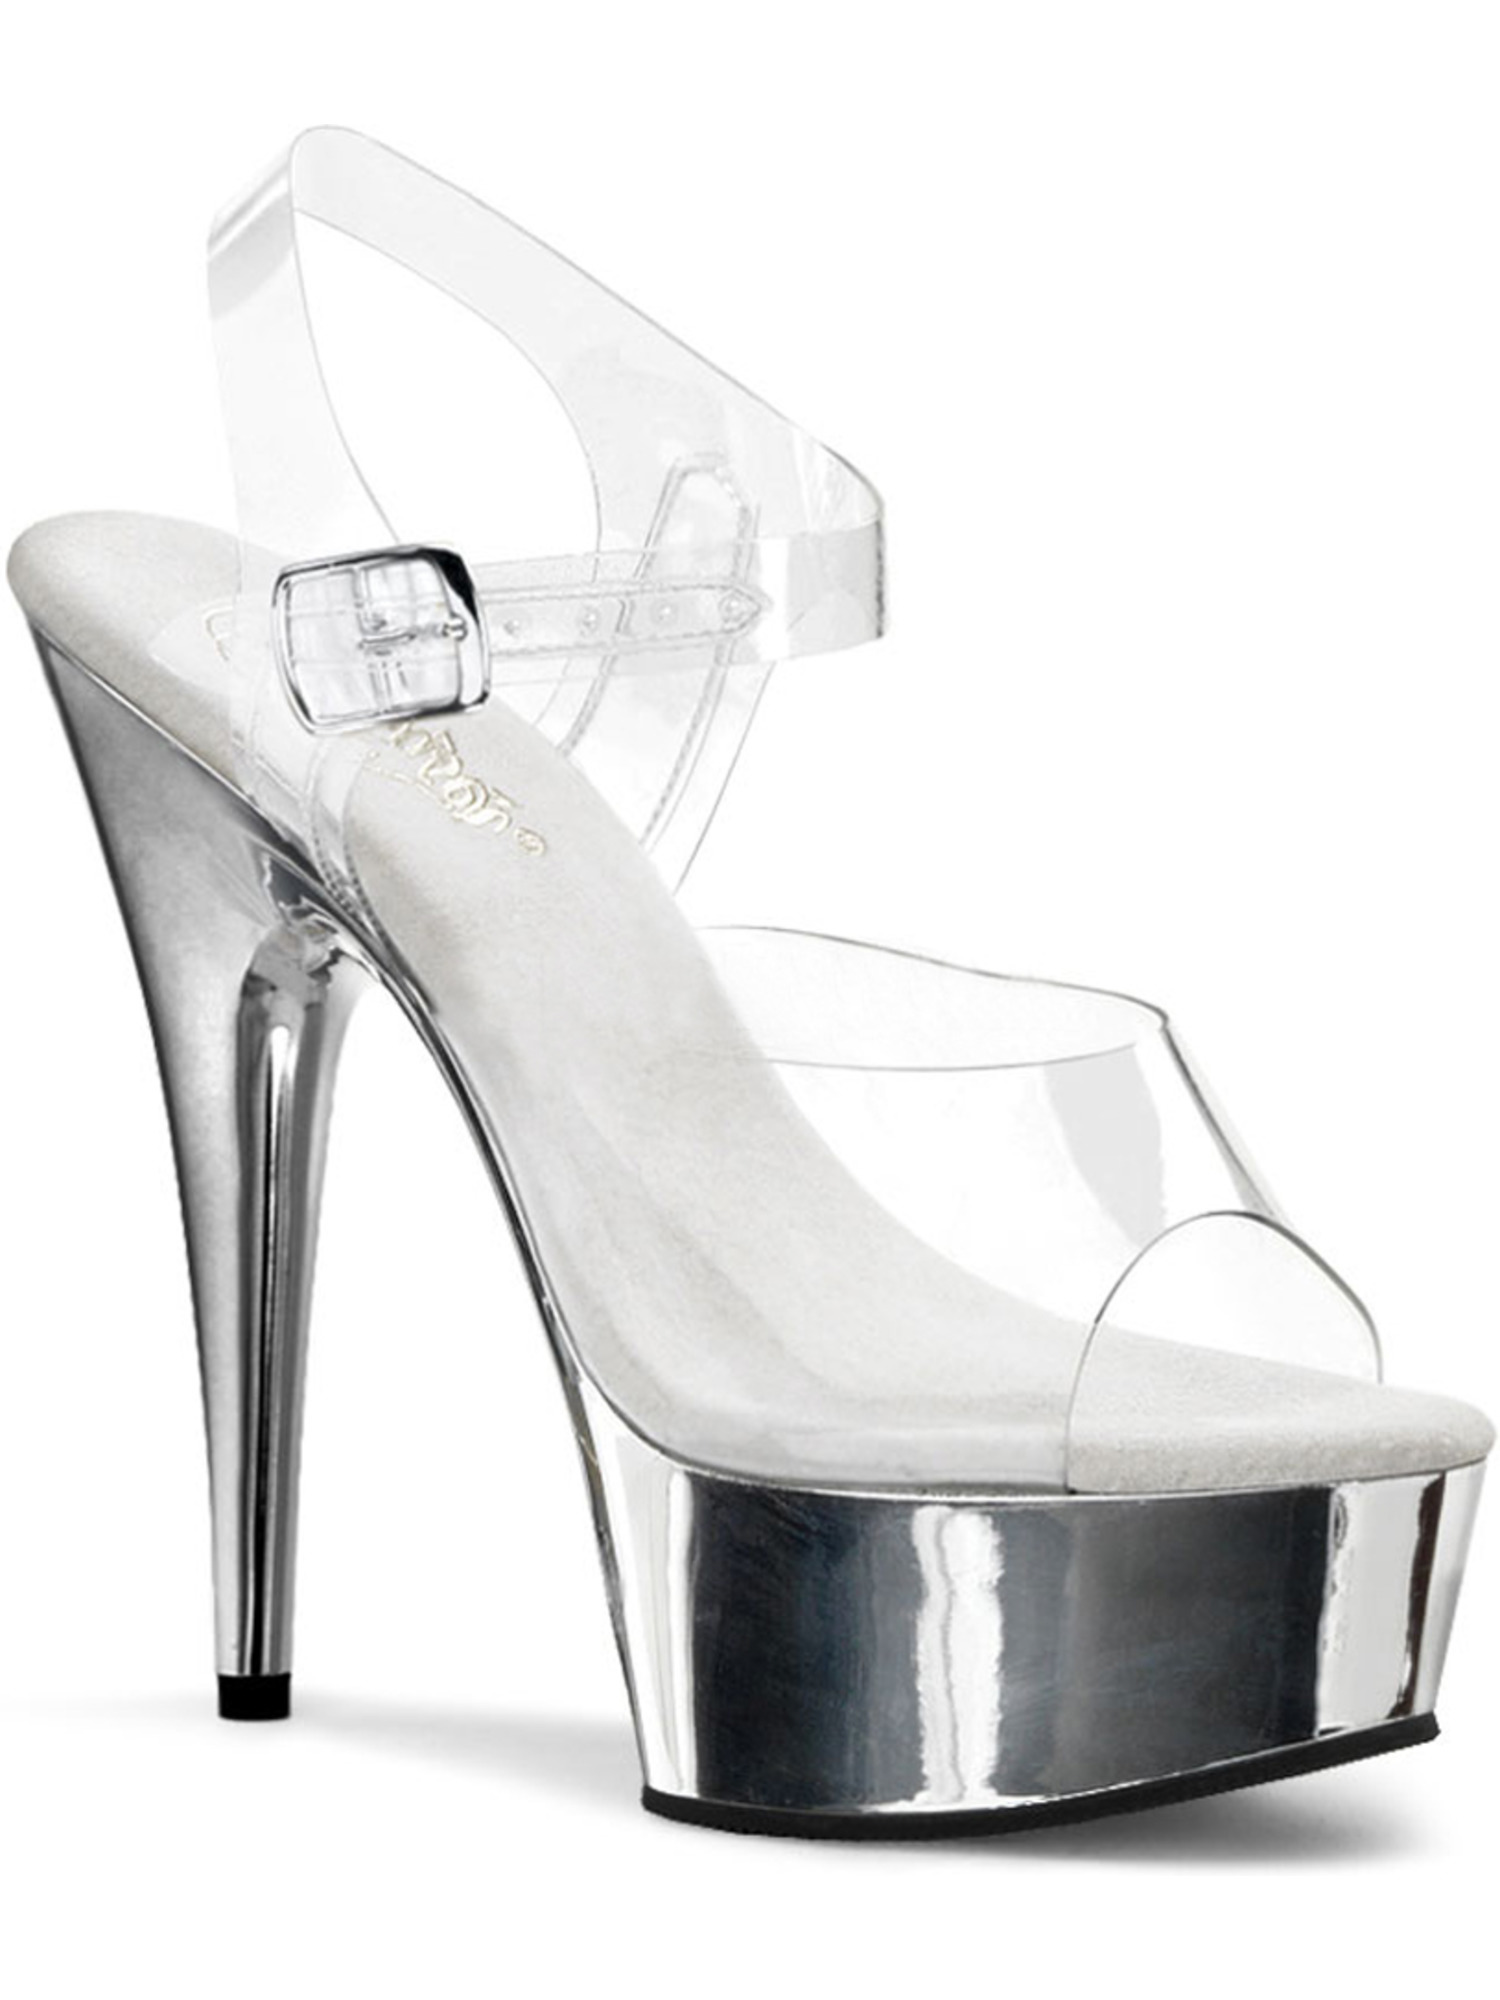 Womens 6 Inch Heels Clear Metallic Shoes Ankle Strap Open Toe Platform Sandals